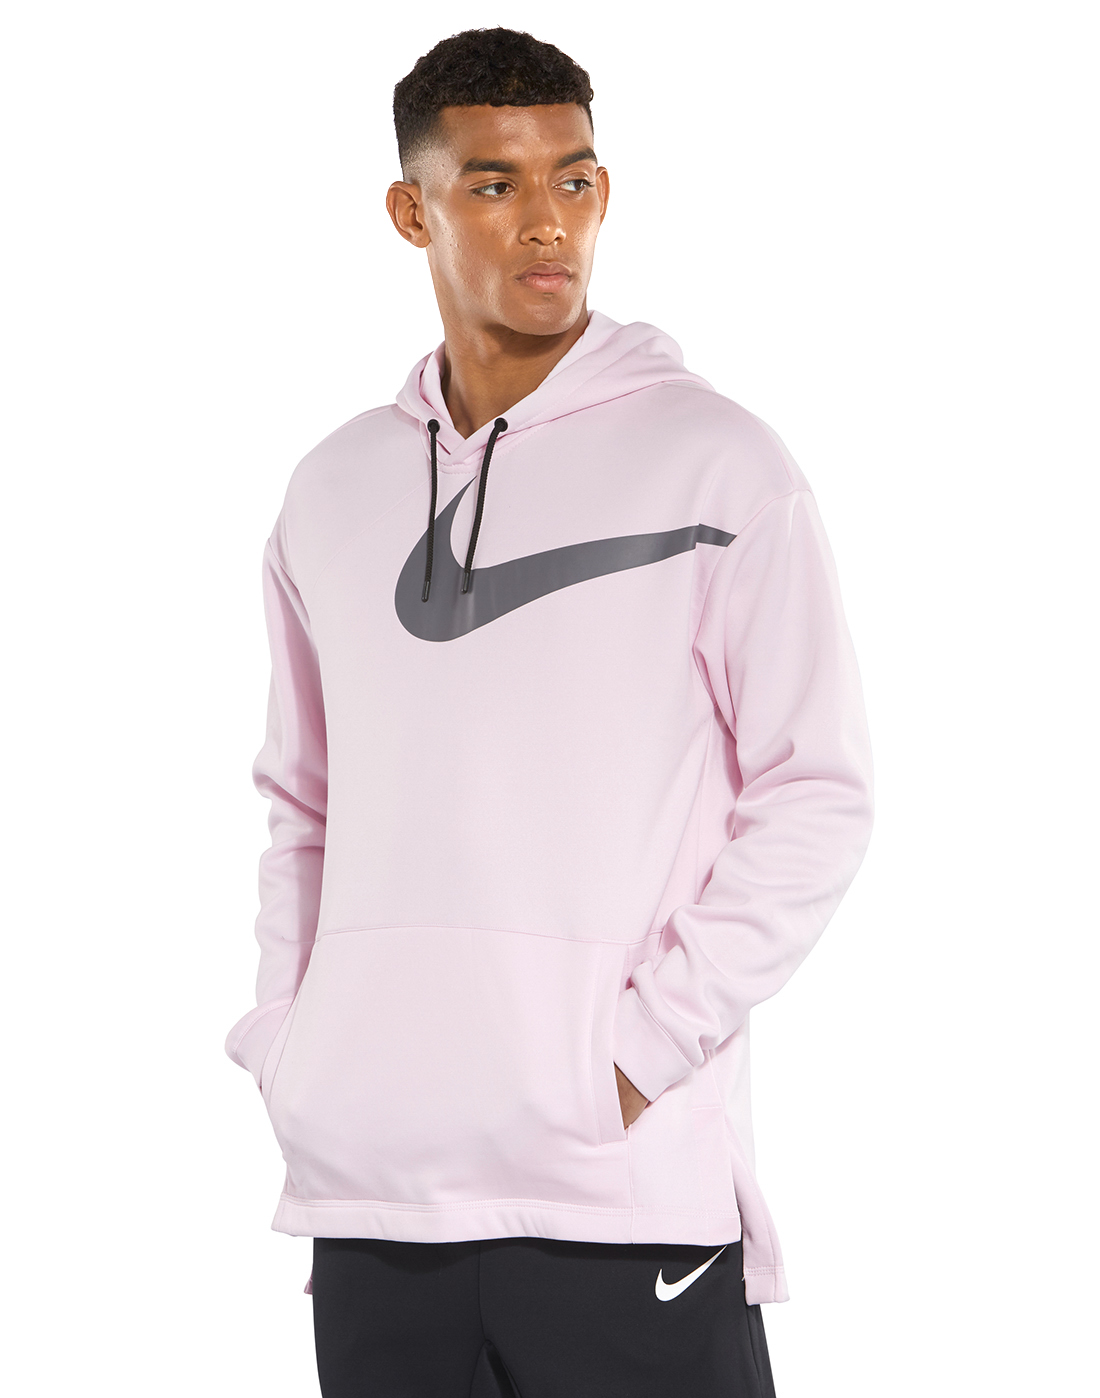 d7906965 Men's Pink Nike Project X Therma Hoodie | Life Style Sports